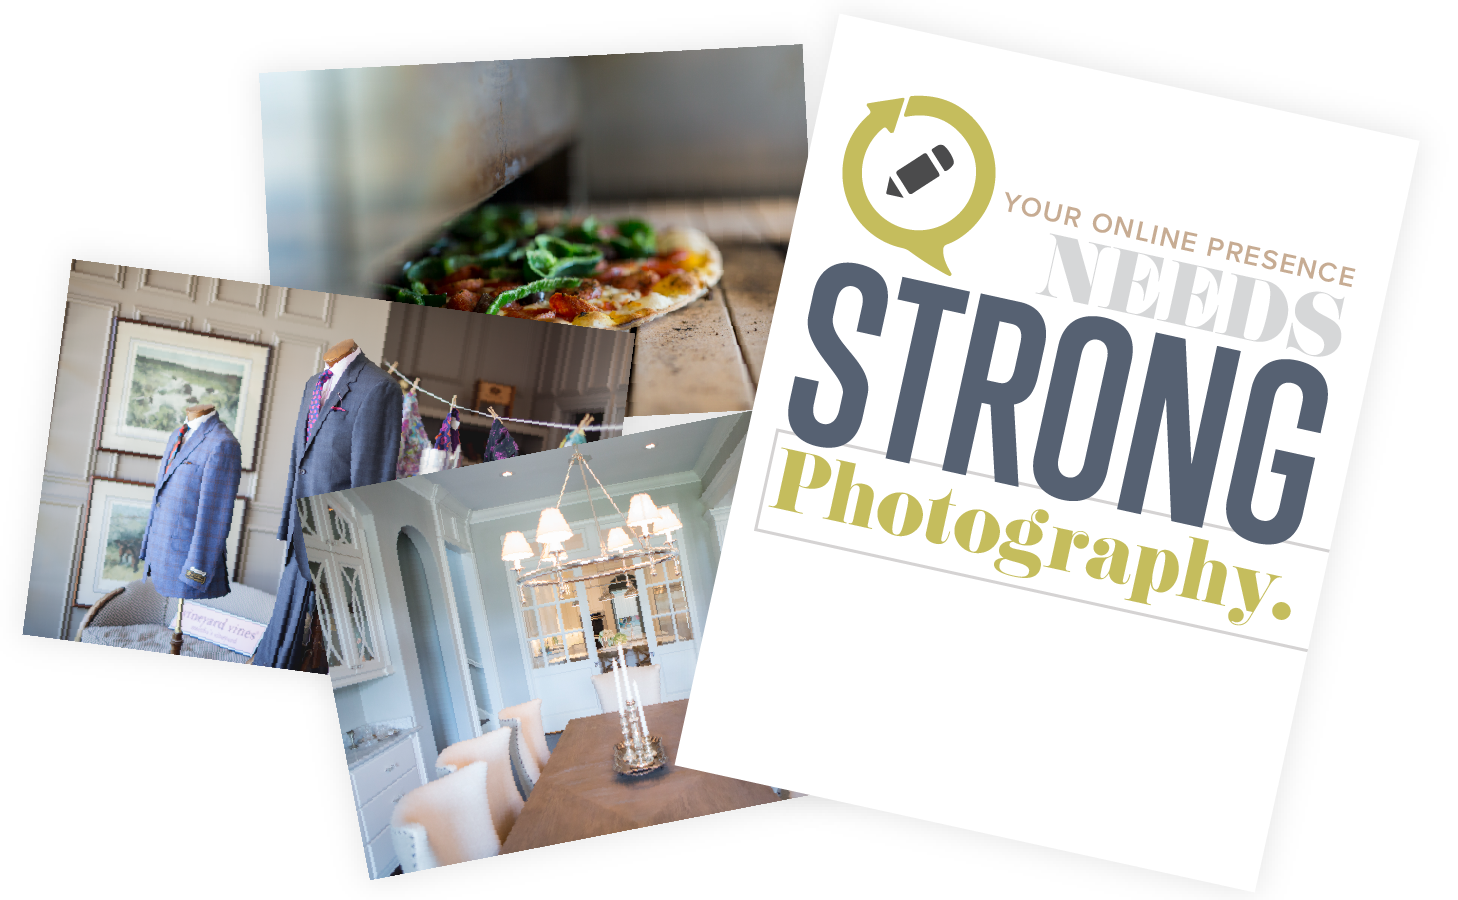 Strong-Photography-LP-Image